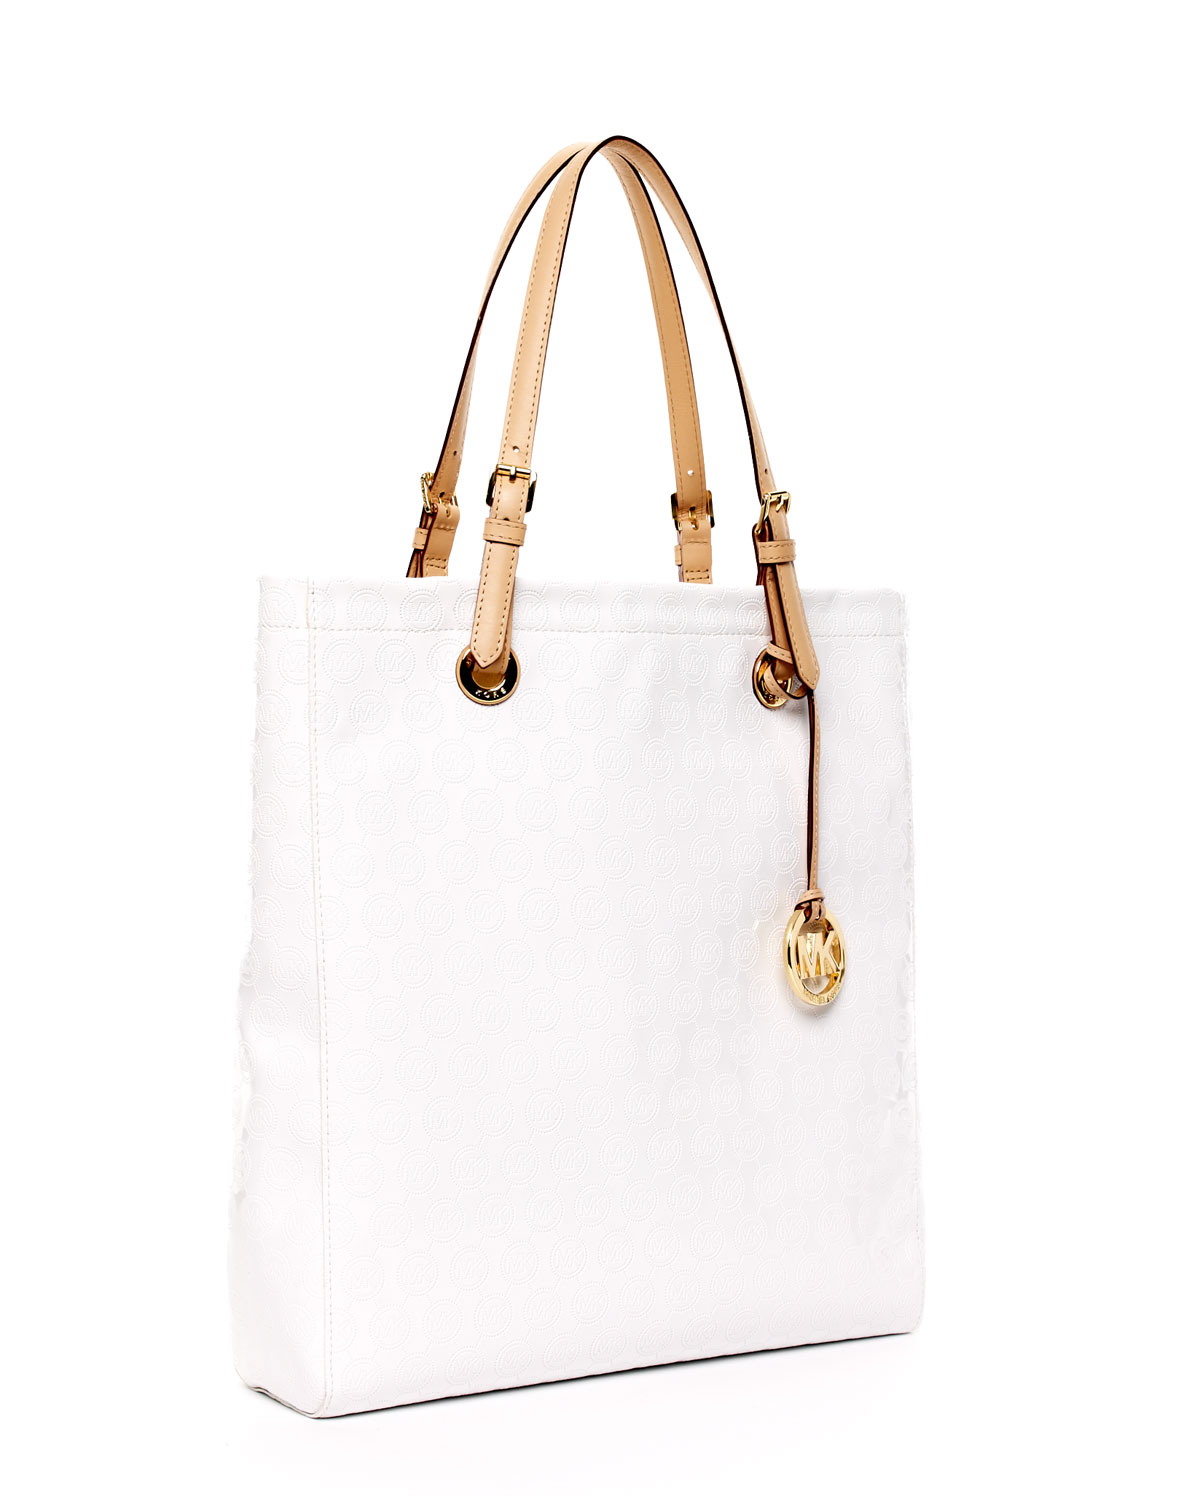 39838f63cf7f ... promo code for lyst michael kors jet set north south item tote white in  white 82e55 ...